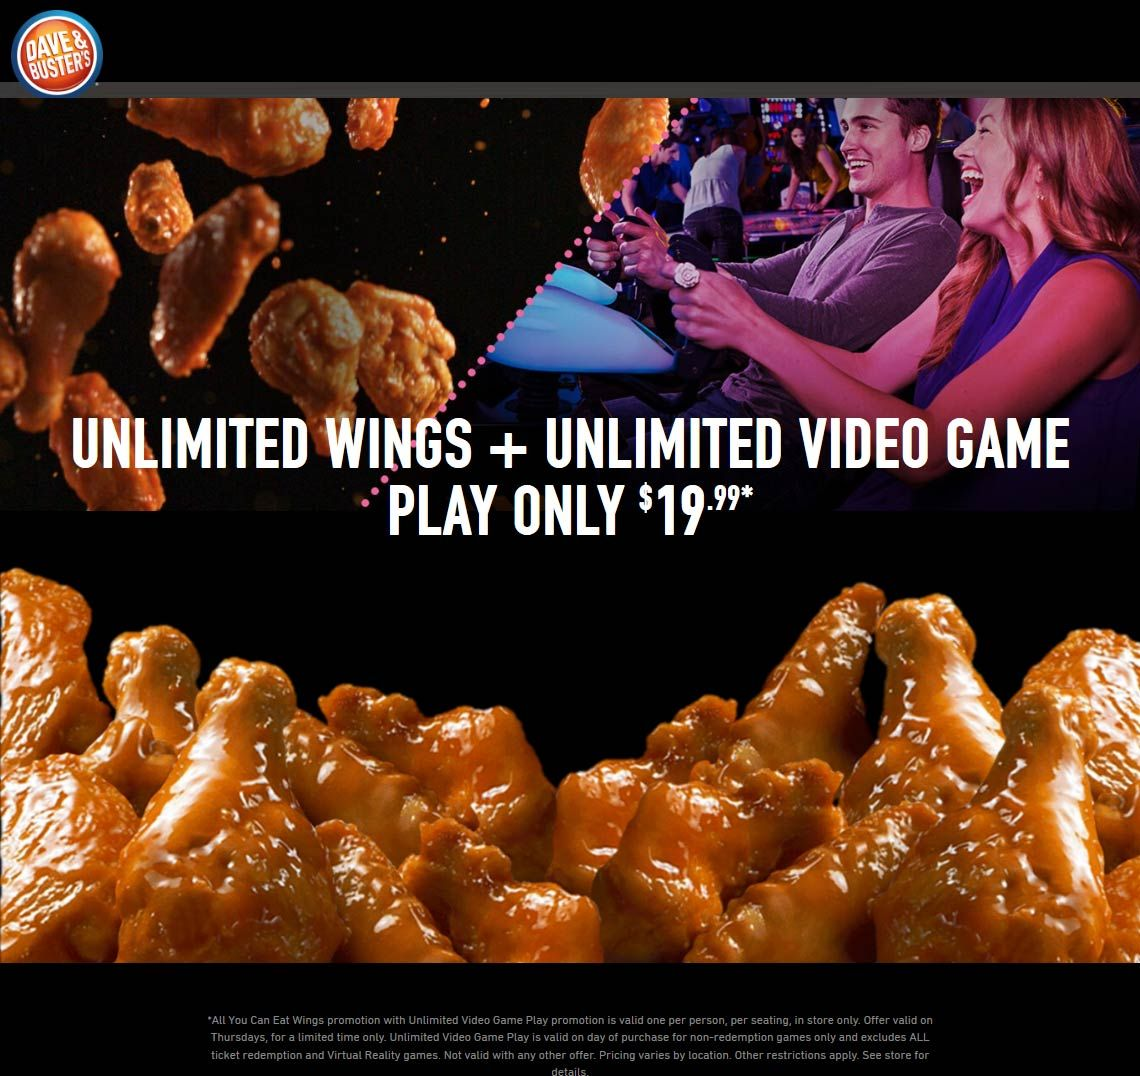 Pinned August 5th Bottomless wings games = 20 Thursday